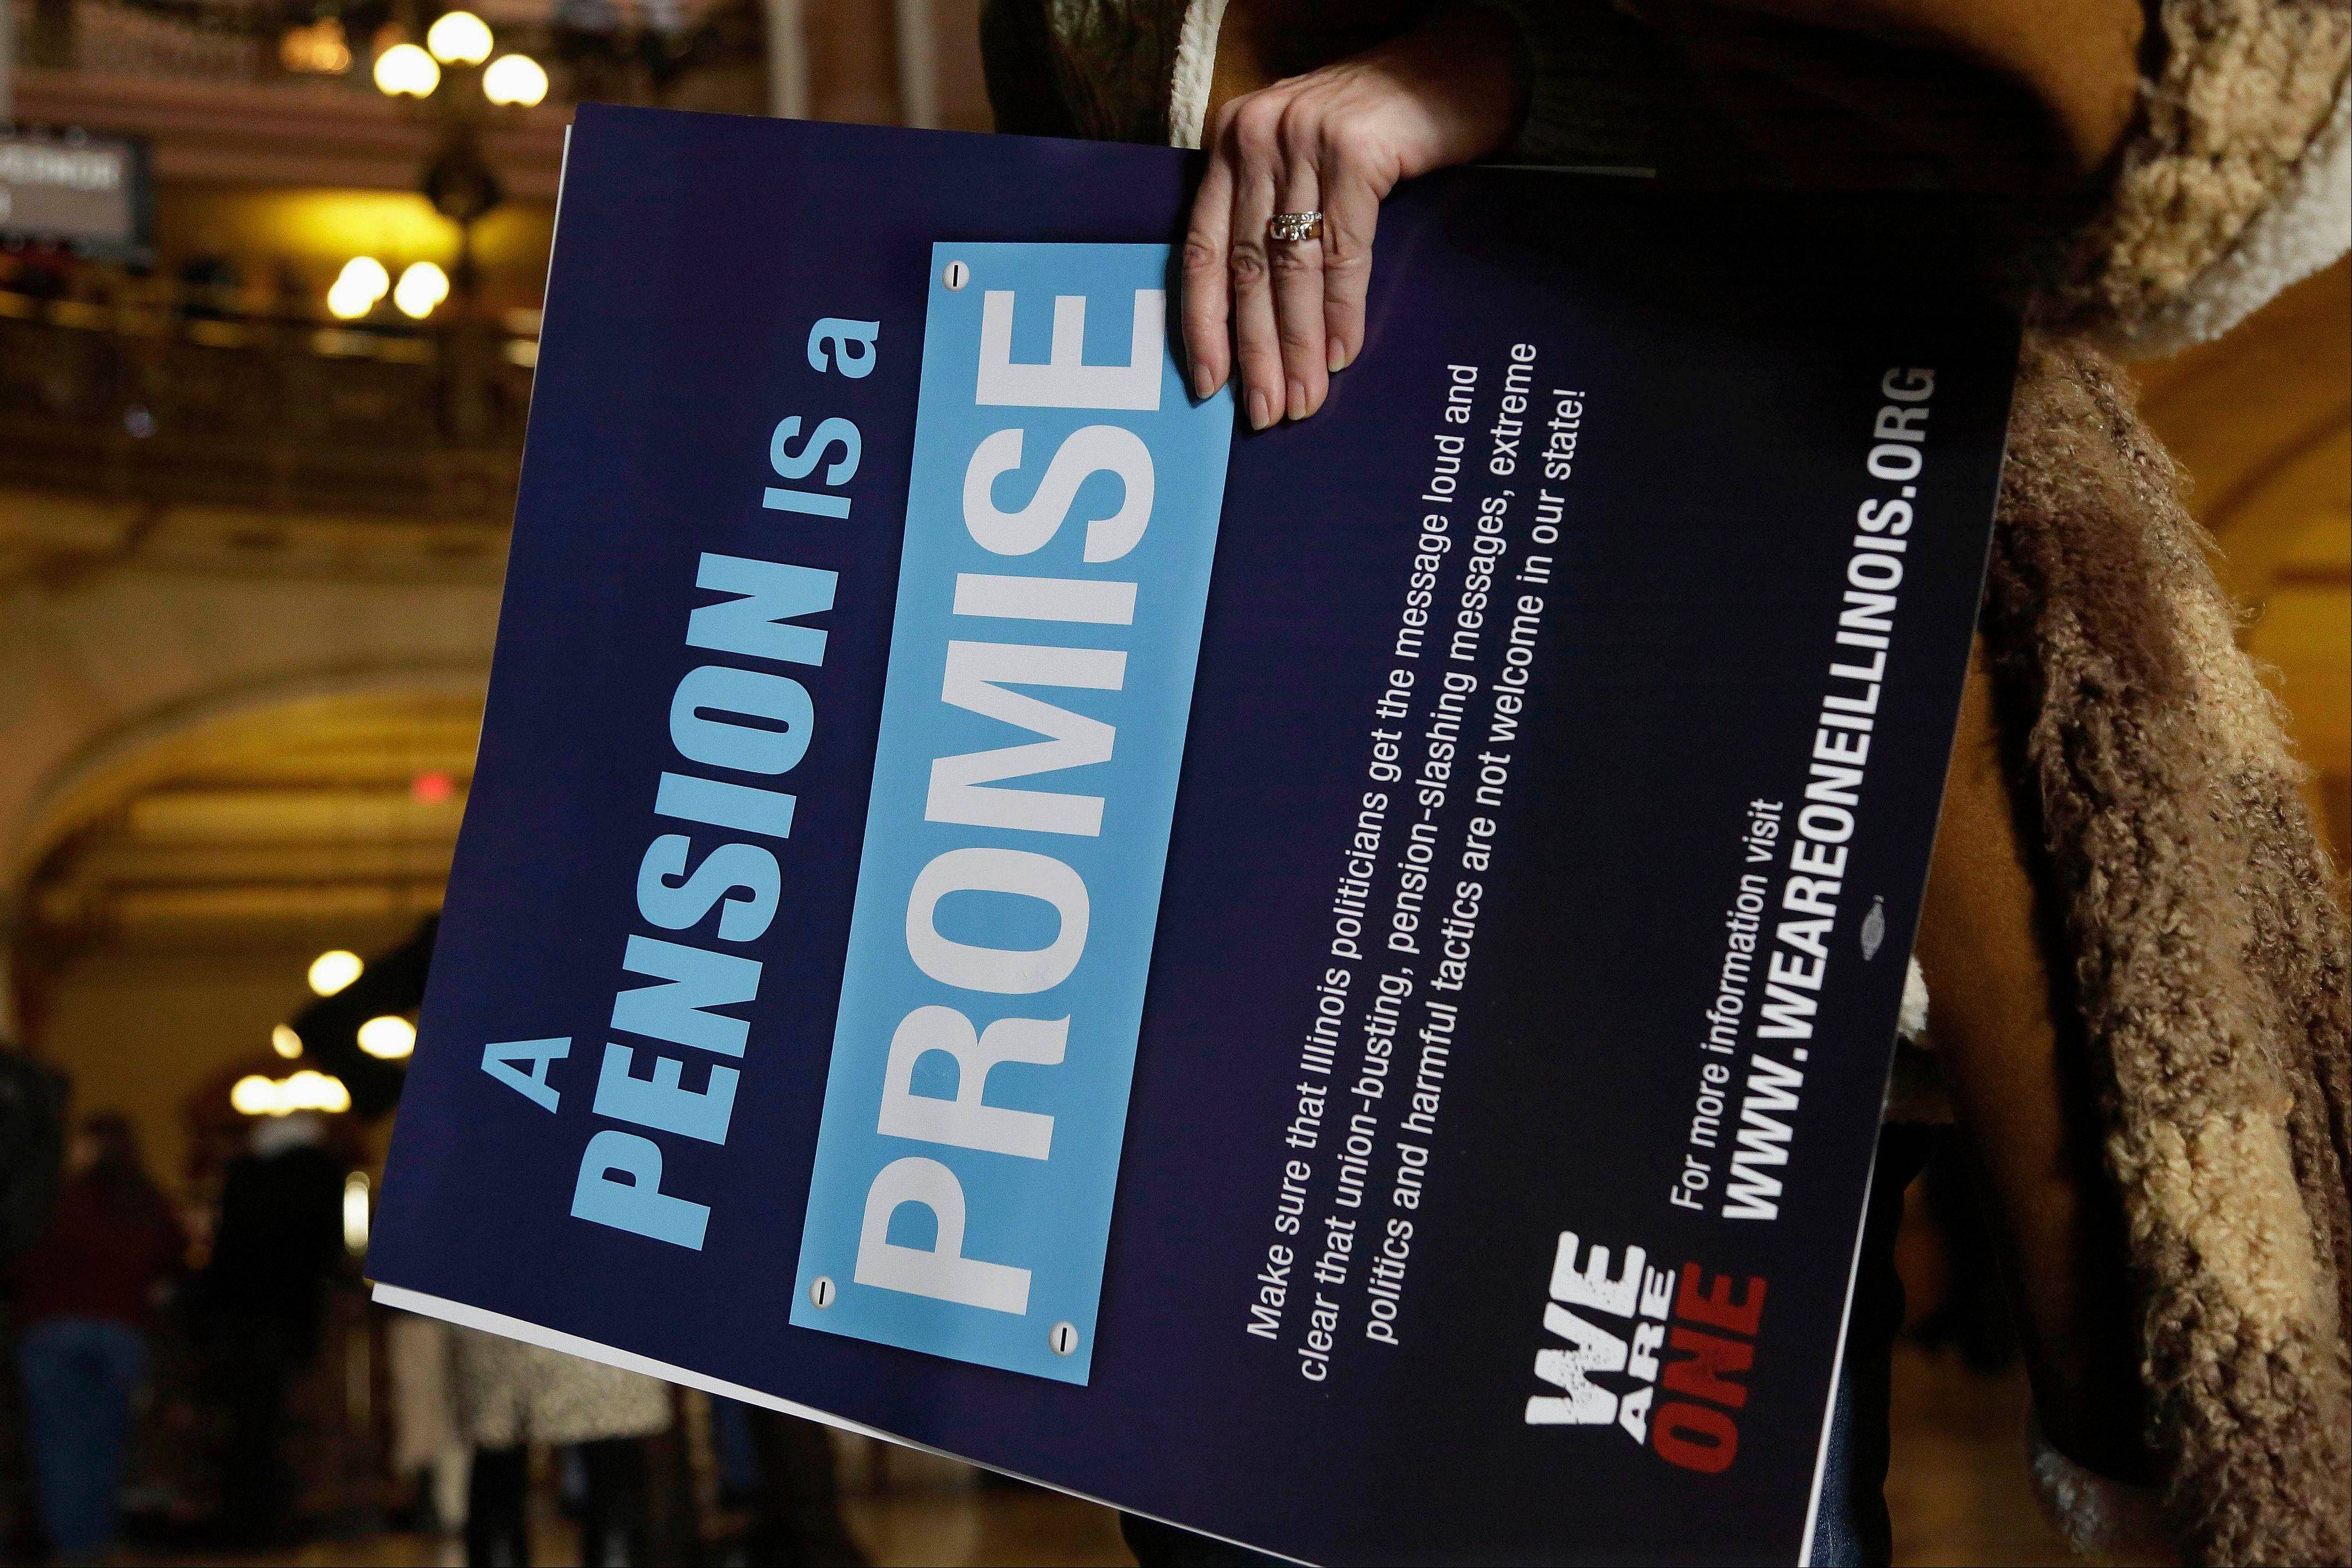 In this Jan. 3, 2013 file photo, a sign is carried during a rally by Illinois state union members and supporters in support for fair pension reform at the Illinois State Capitol in Springfield. In December Gov. Pat Quinn signed the pension overhaul legislation bill in Chicago. The passing of the landmark $160 billion legislation was voted the top story in Illinois for 2013.